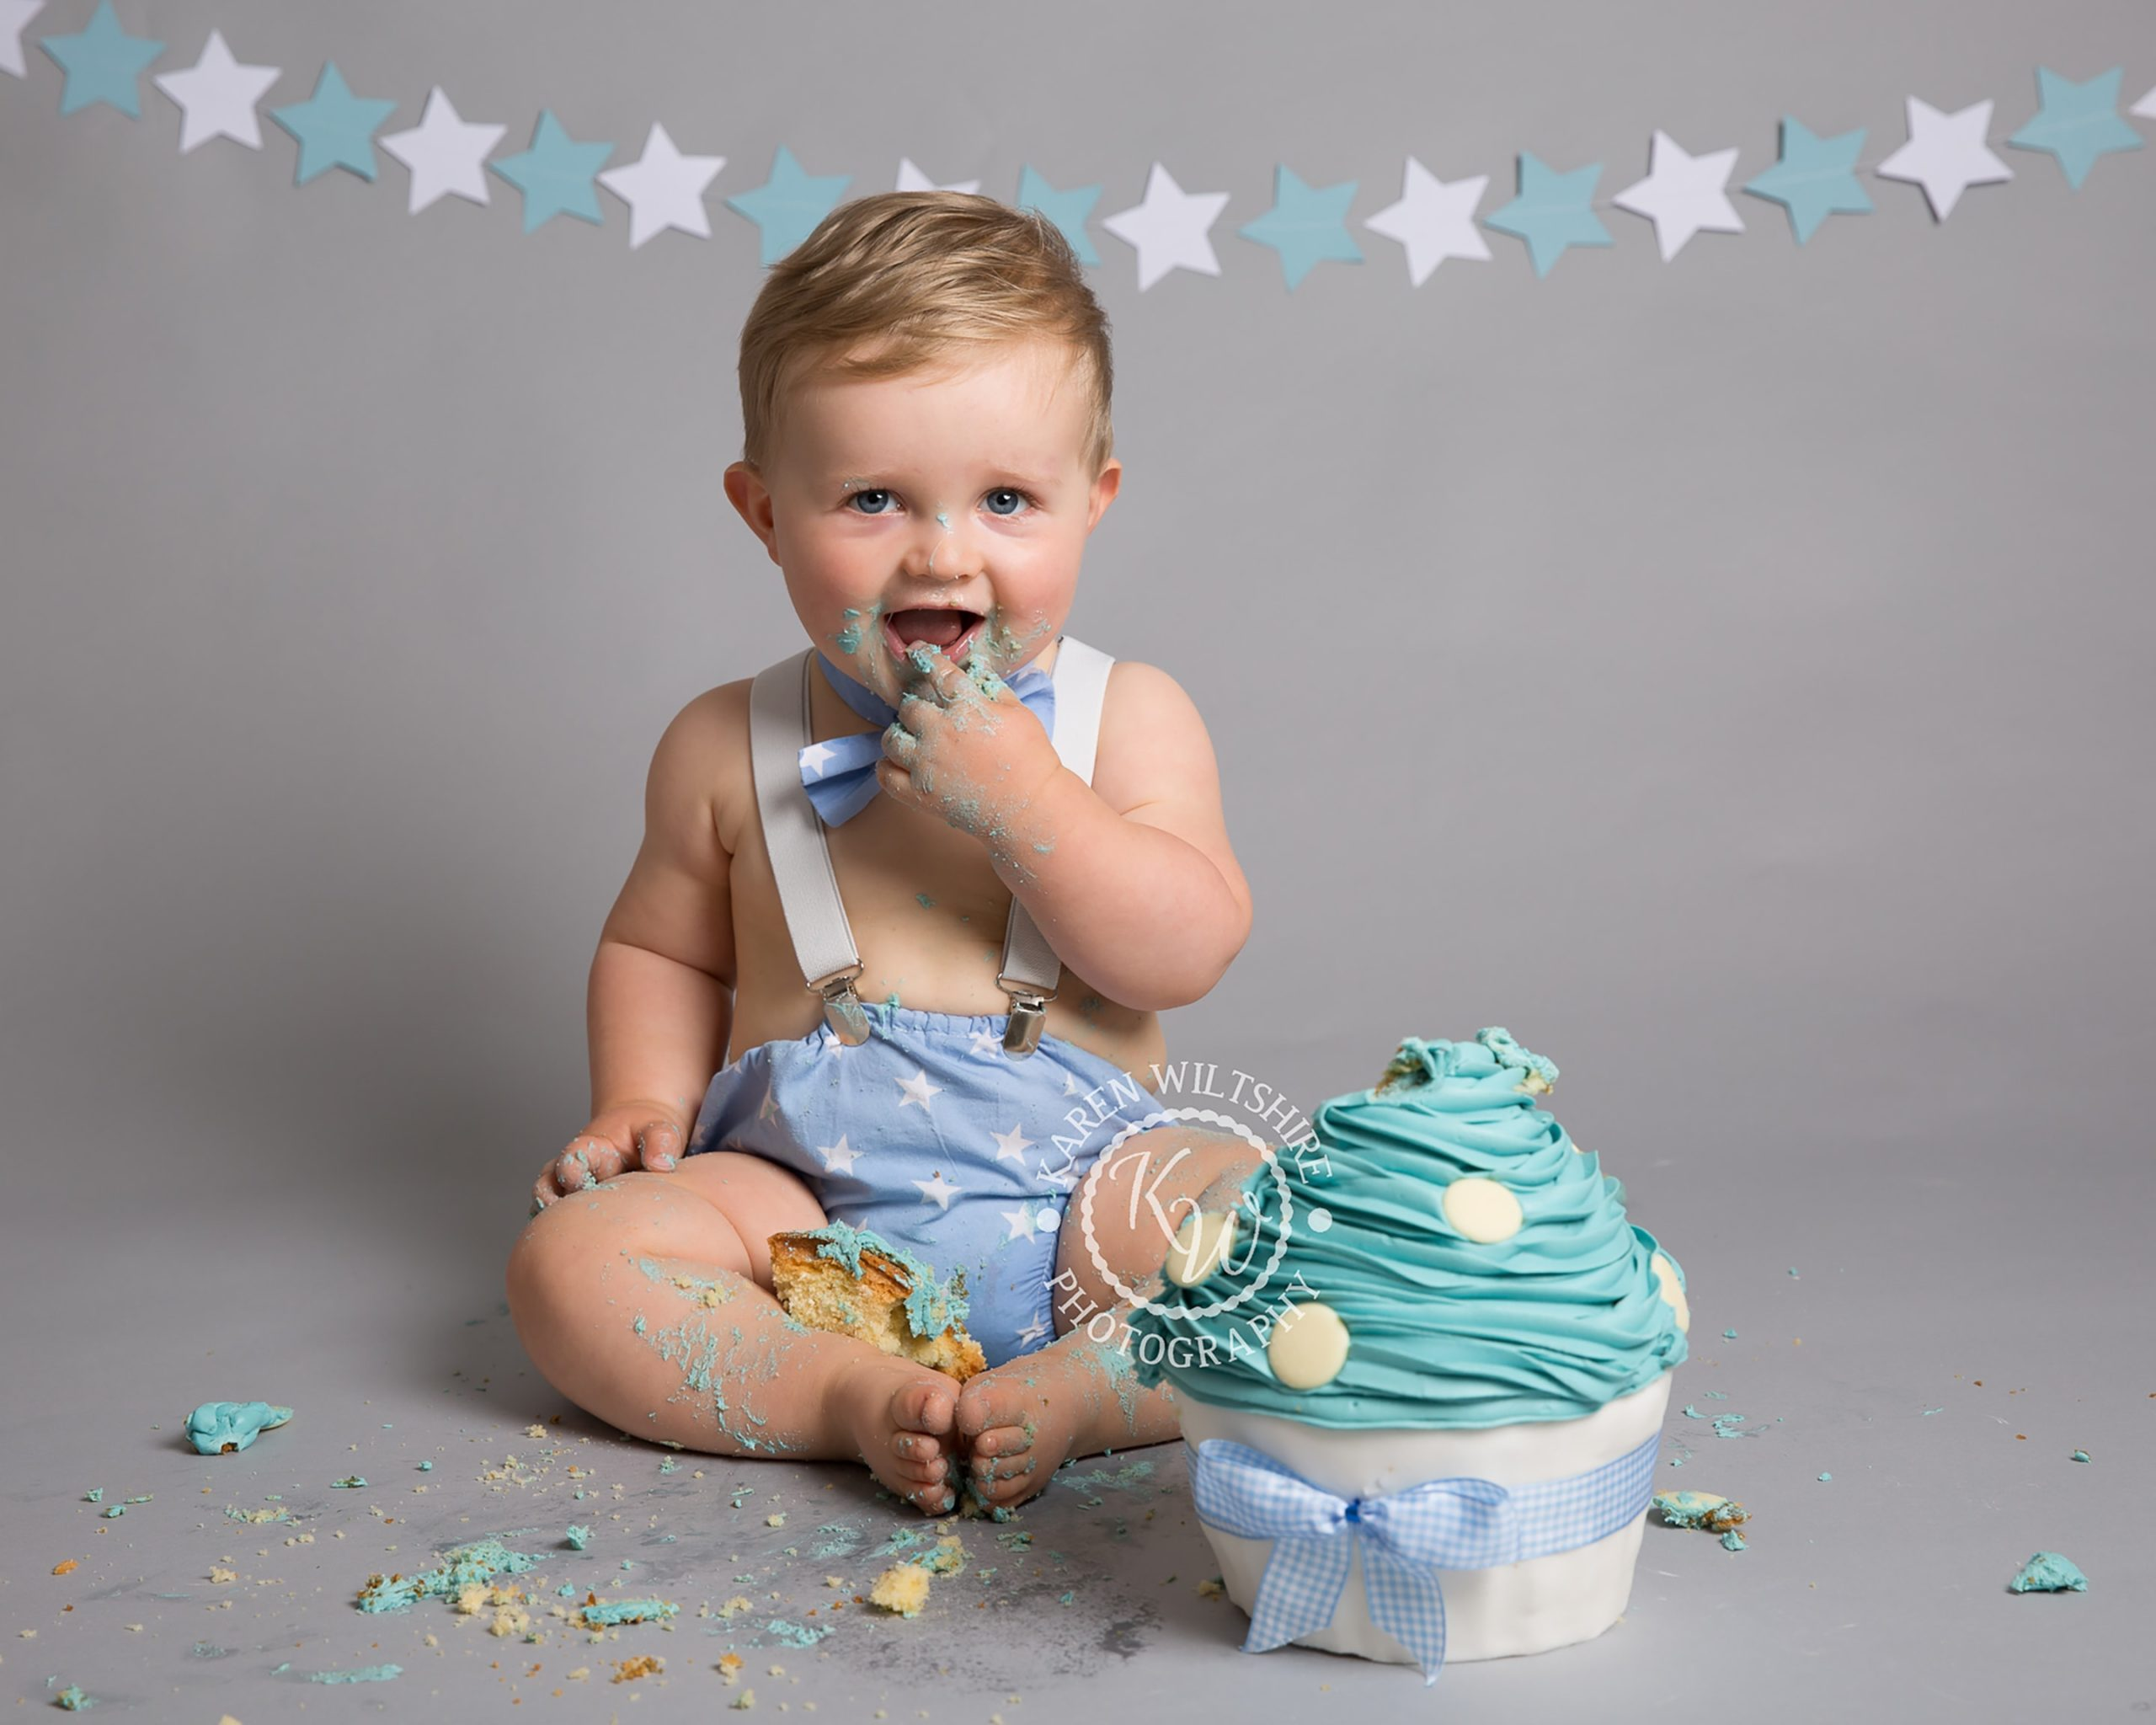 baby boy in blue outfit enjoying a large cupcake